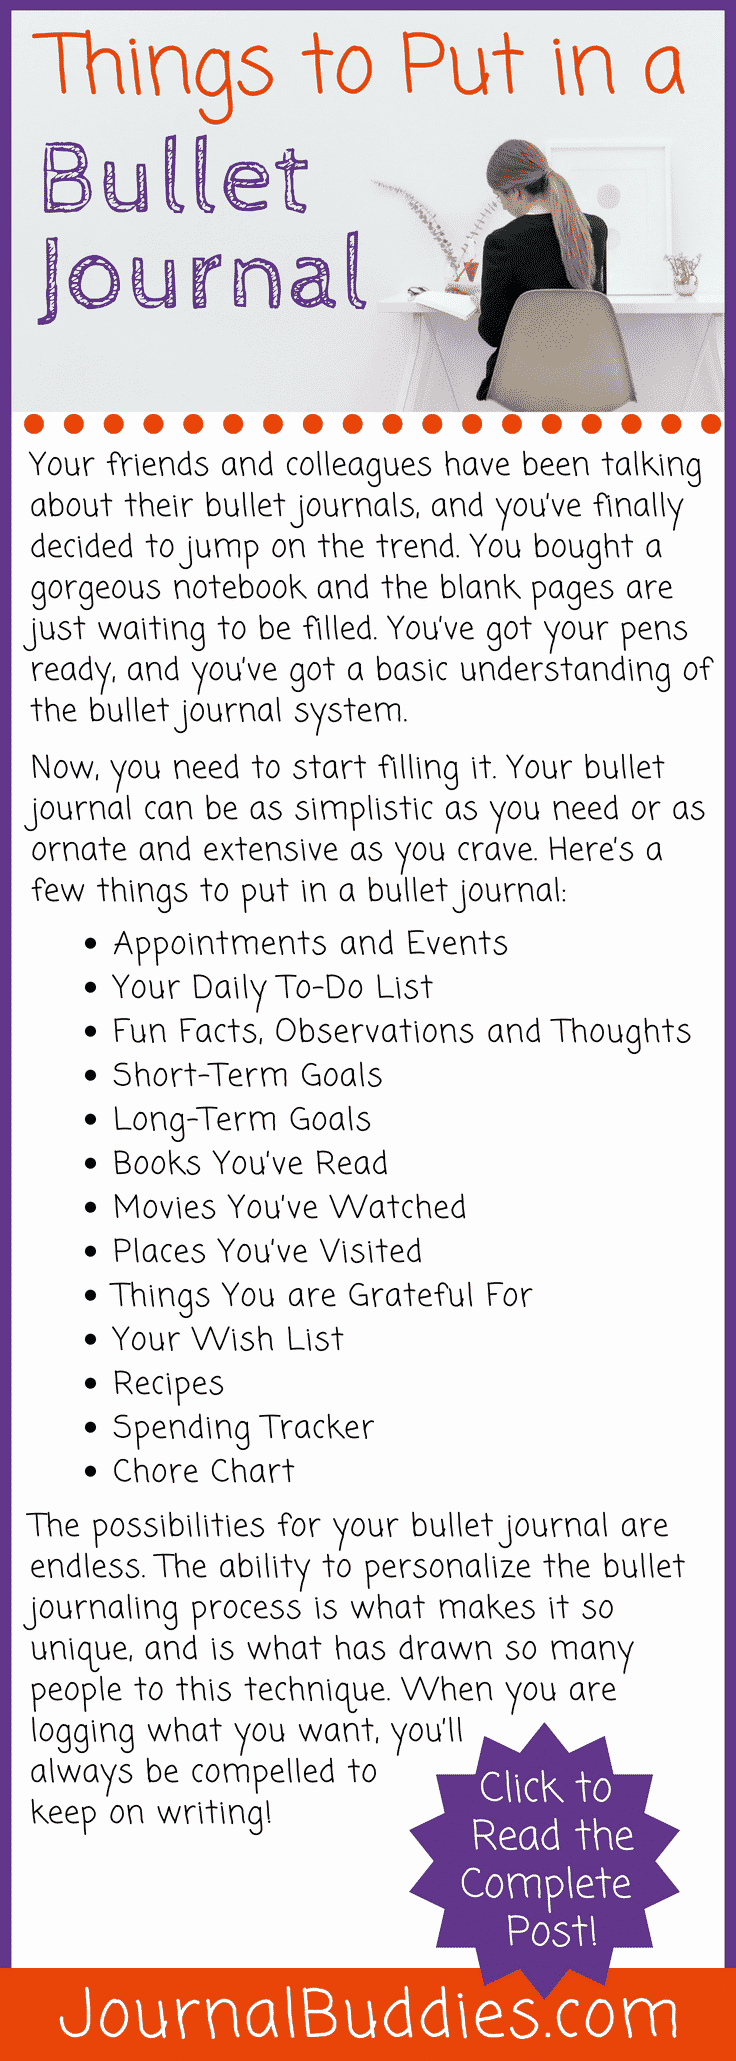 The possibilities for your bullet journal are endless. The ability to personalize the bullet journaling process is what makes it so unique and is what has drawn so many people to this technique.